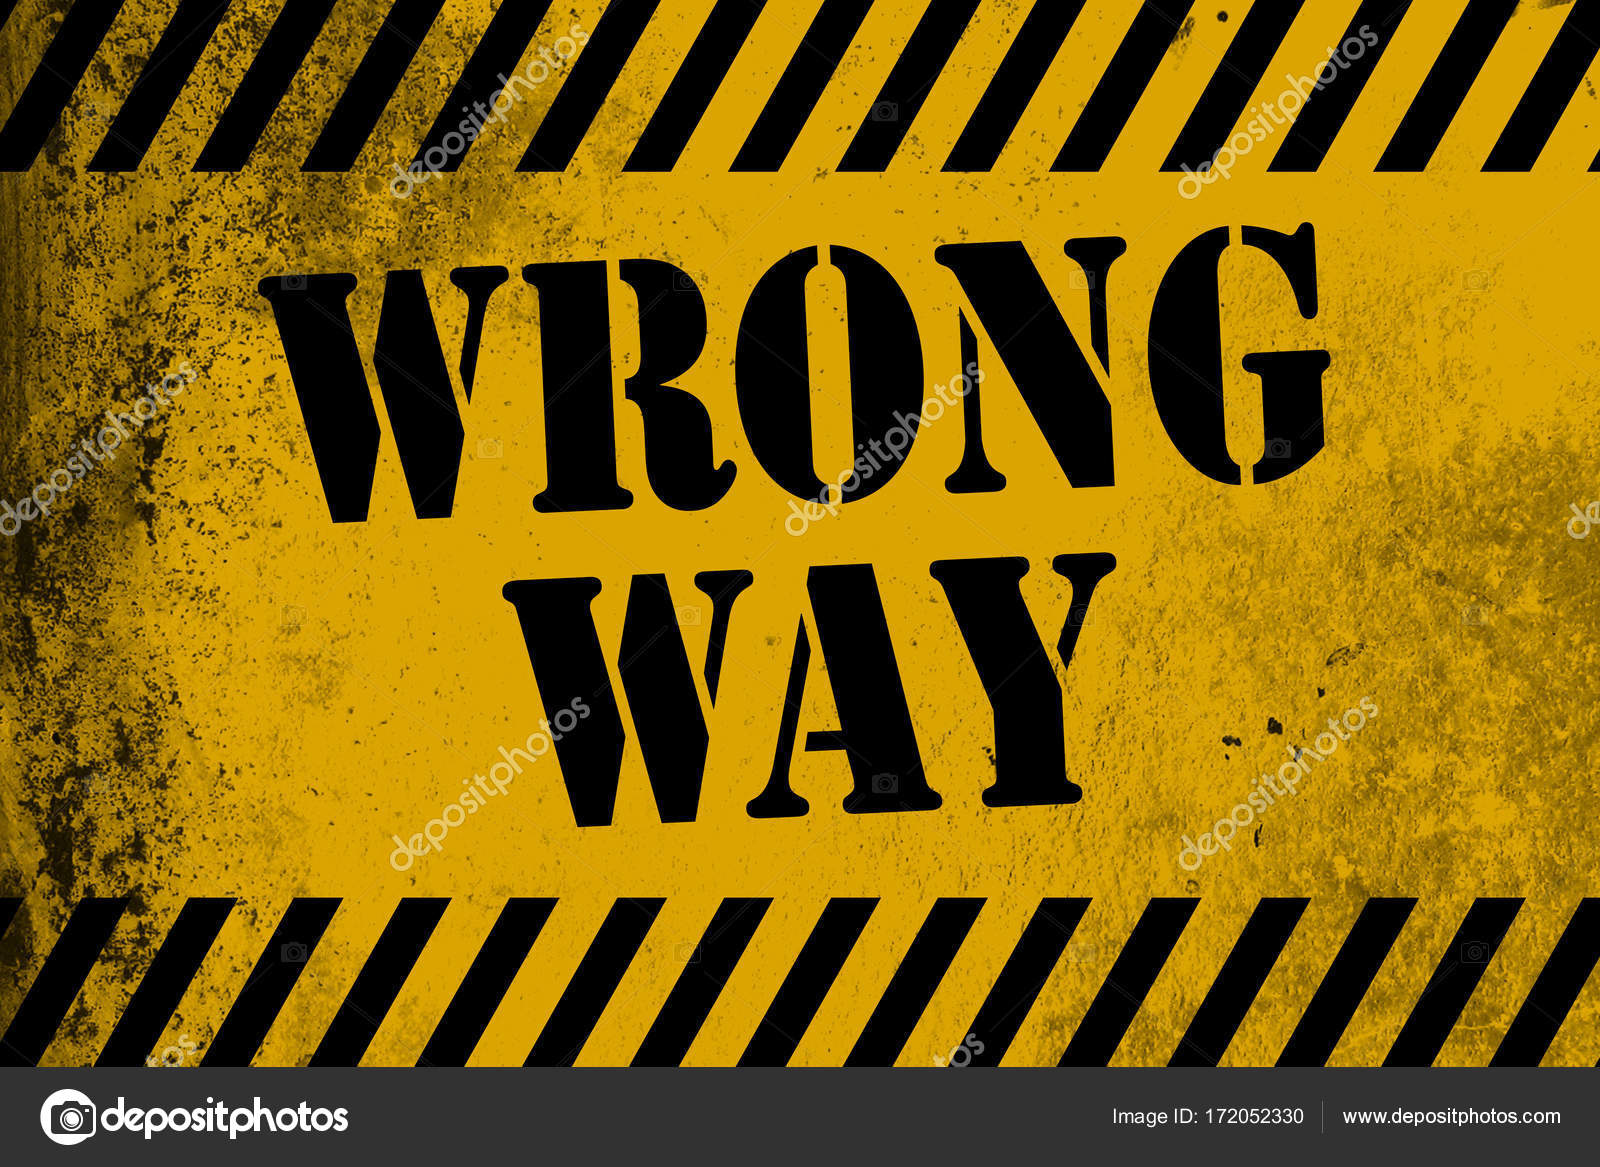 wrong way sign yellow with stripes stock photo tang90246 172052330